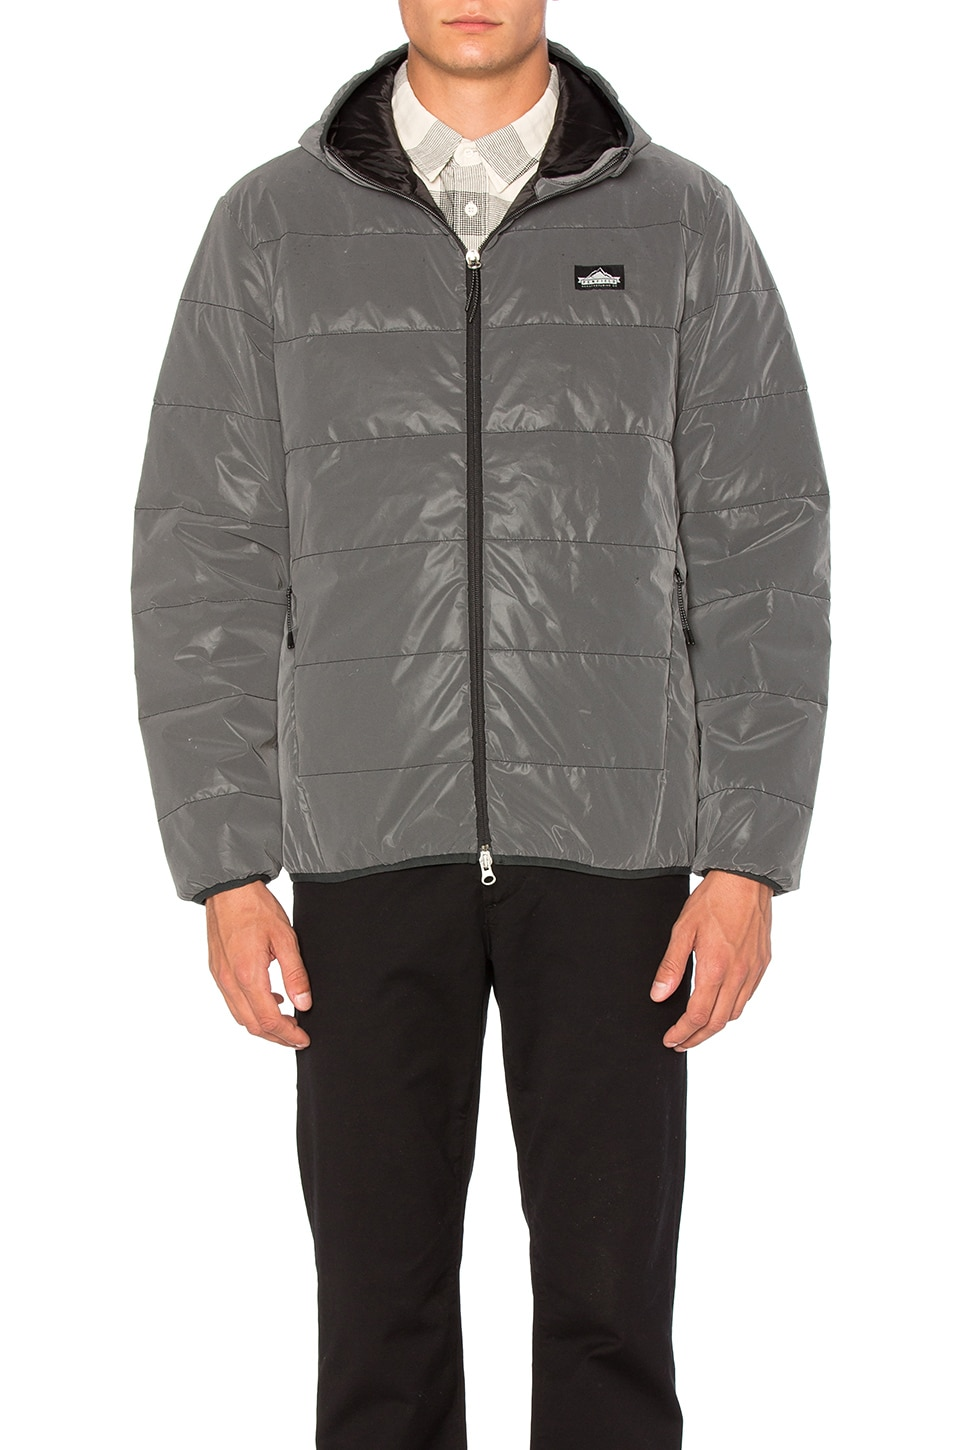 Makinaw Reflective Packable Down Jacket by Penfield